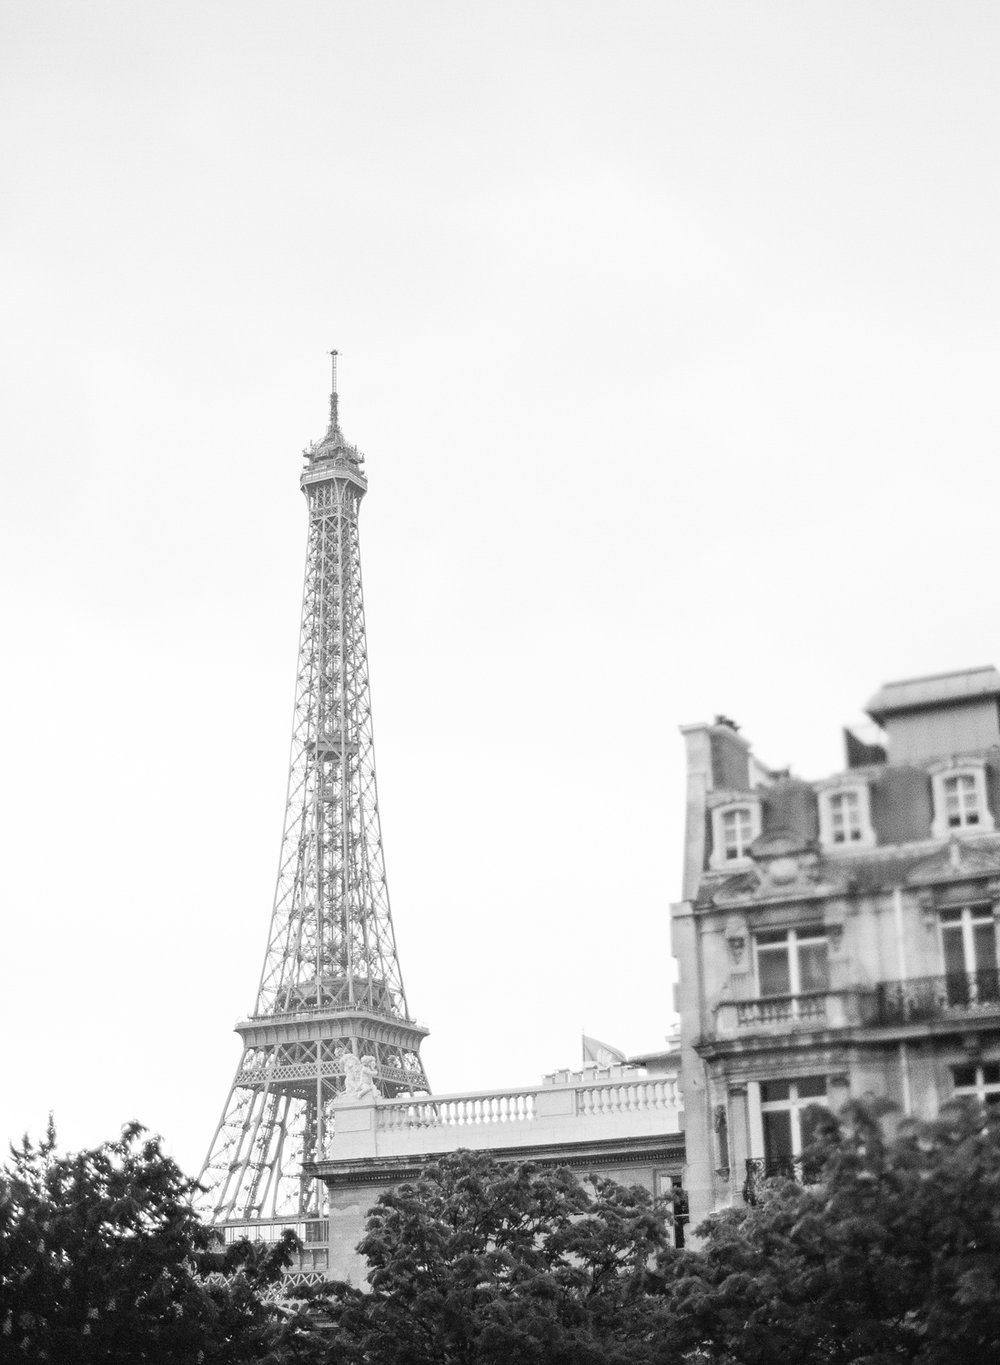 A glimpse of the Eiffel Tower from Pavillon de la Musique in Paris; Sylvie Gil Photography